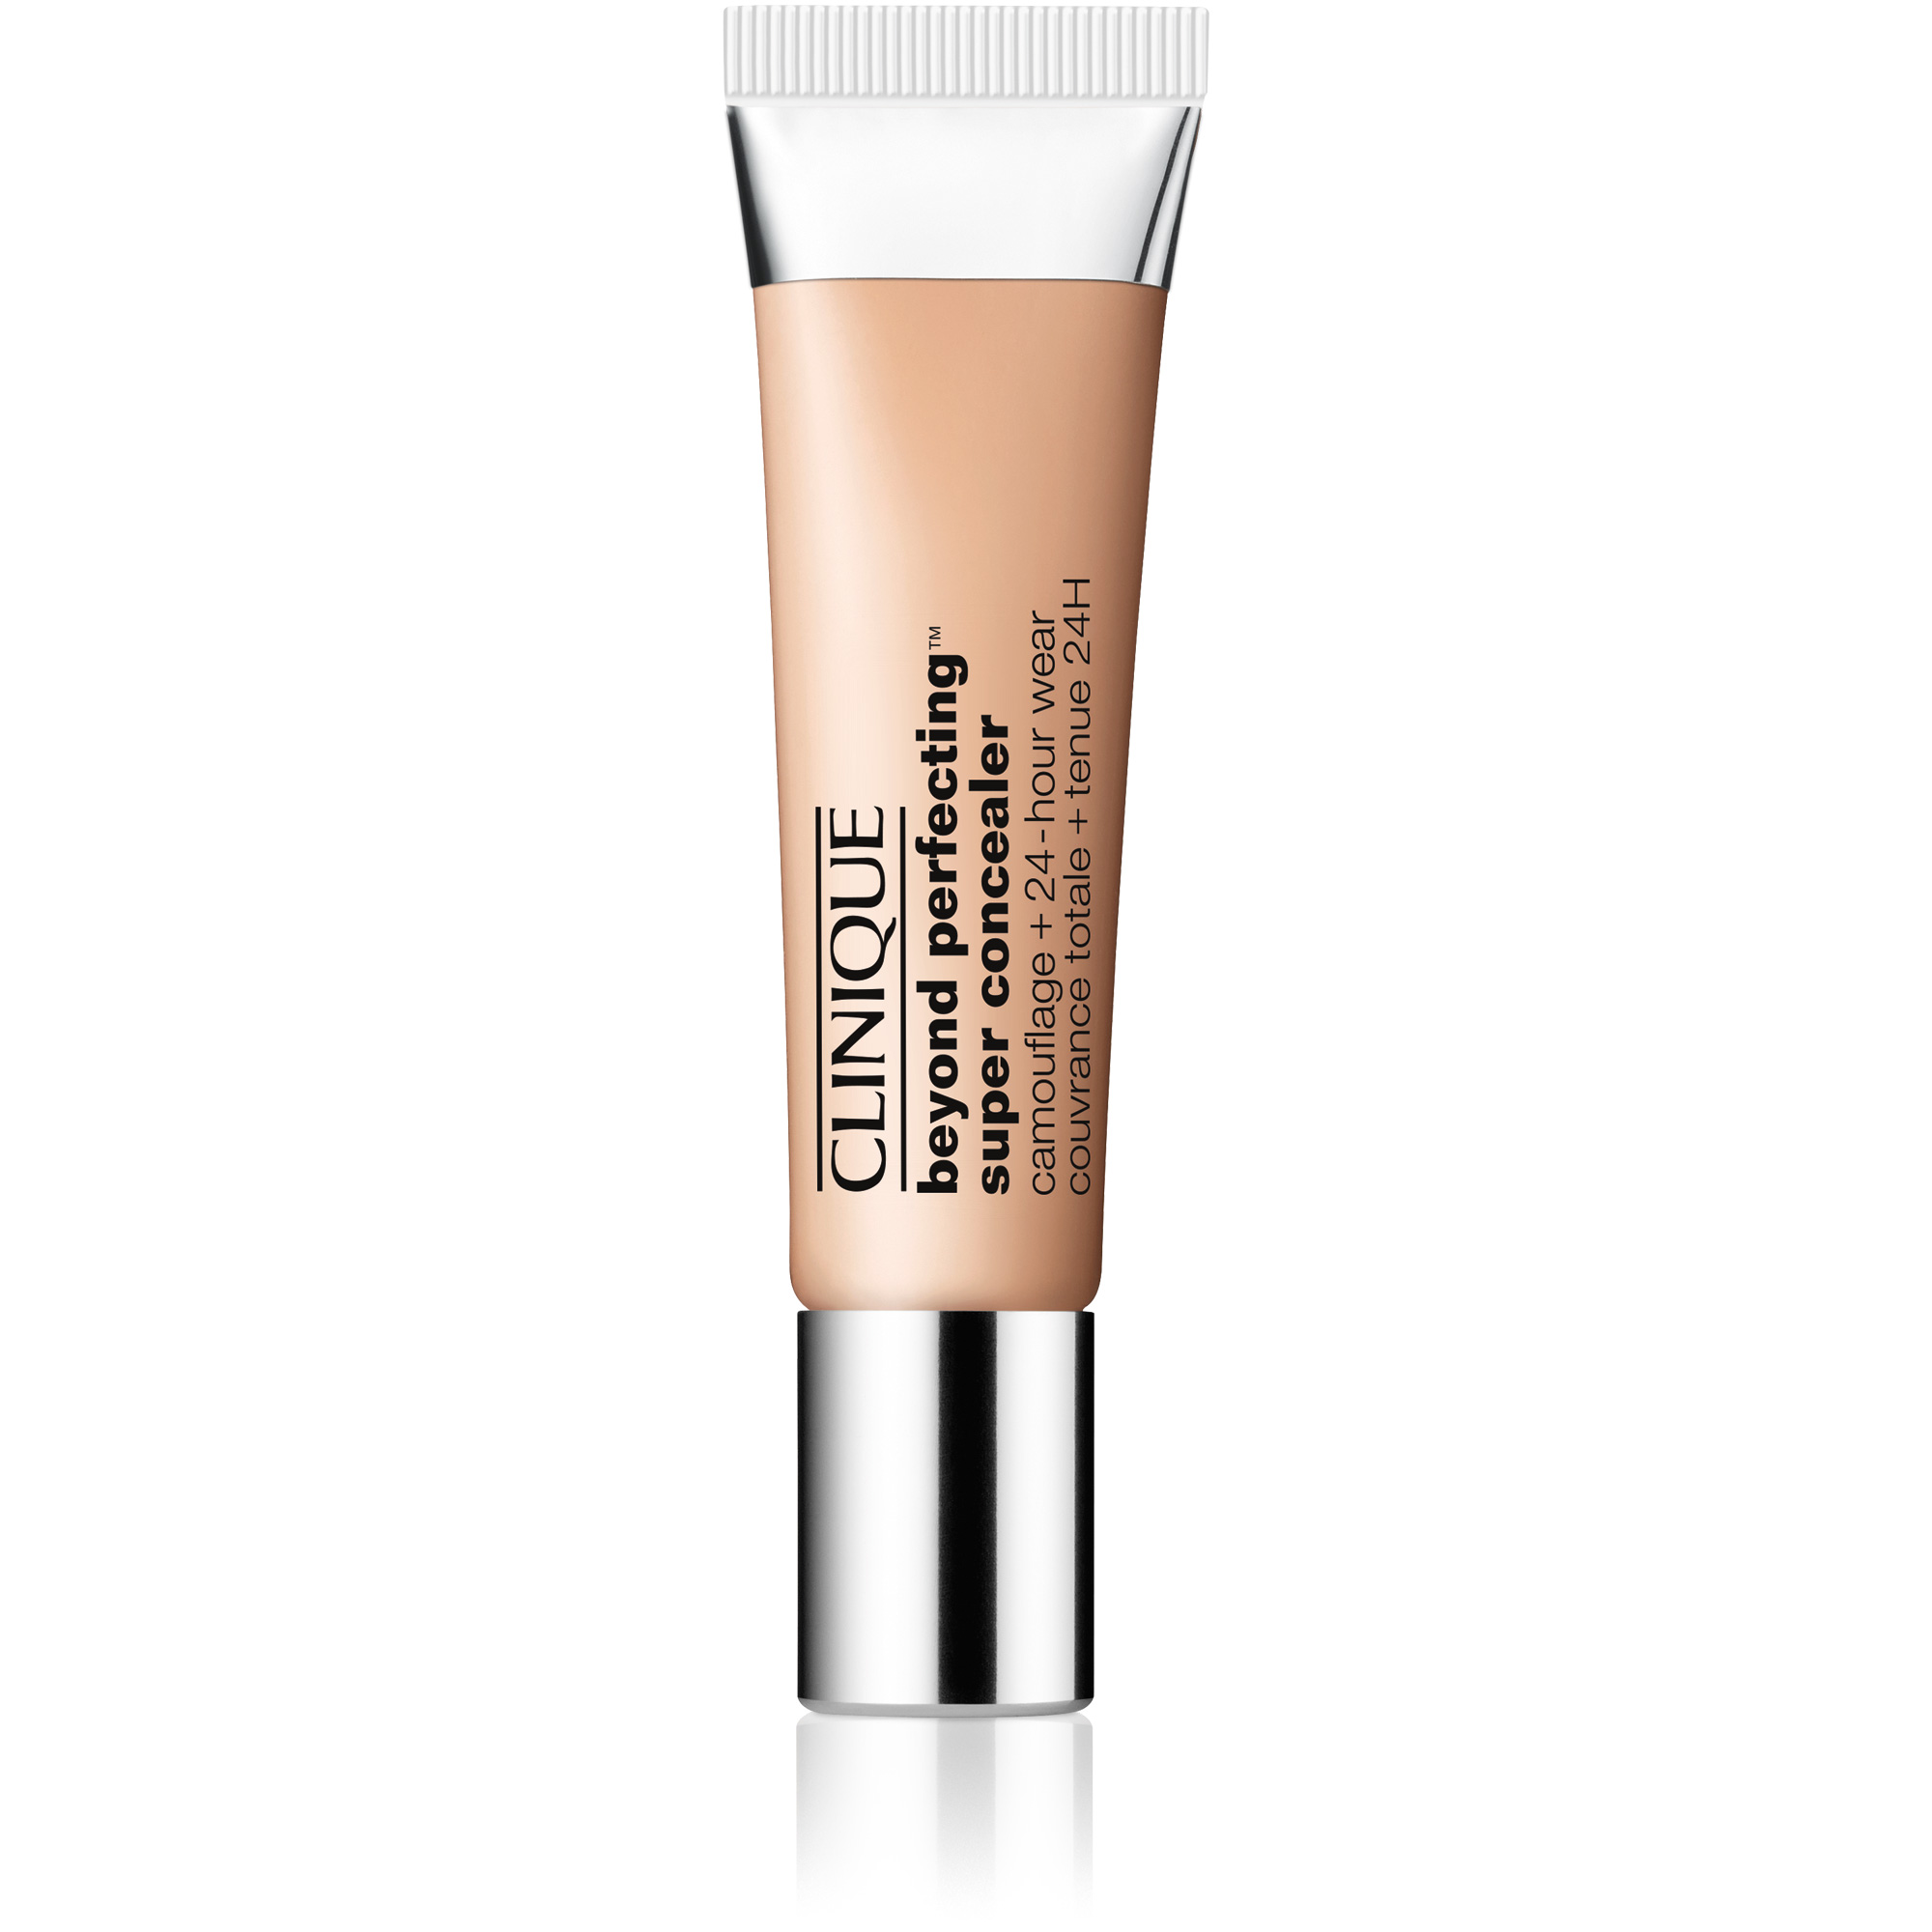 Beyond Perfecting Super Concealer Camouflage & 24Hr Wear Concealer 10 Moderately Fair